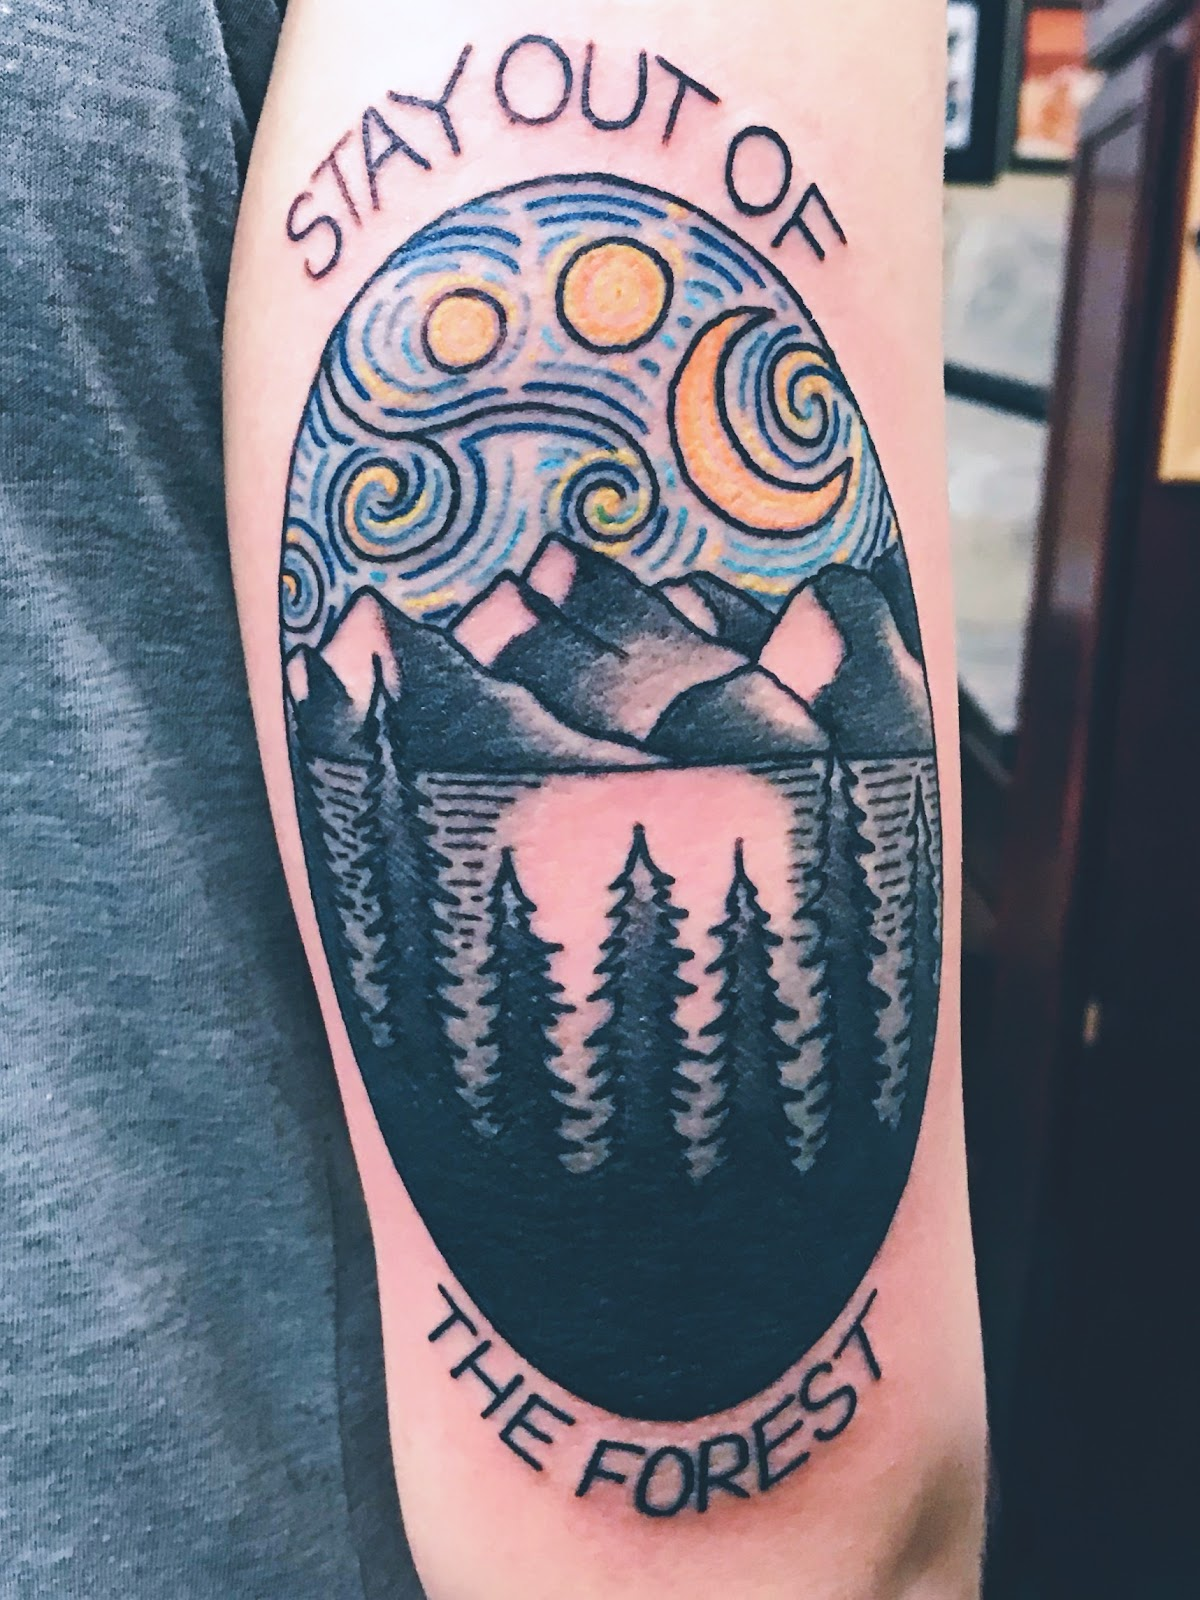 Stay out of the forest tattoo.